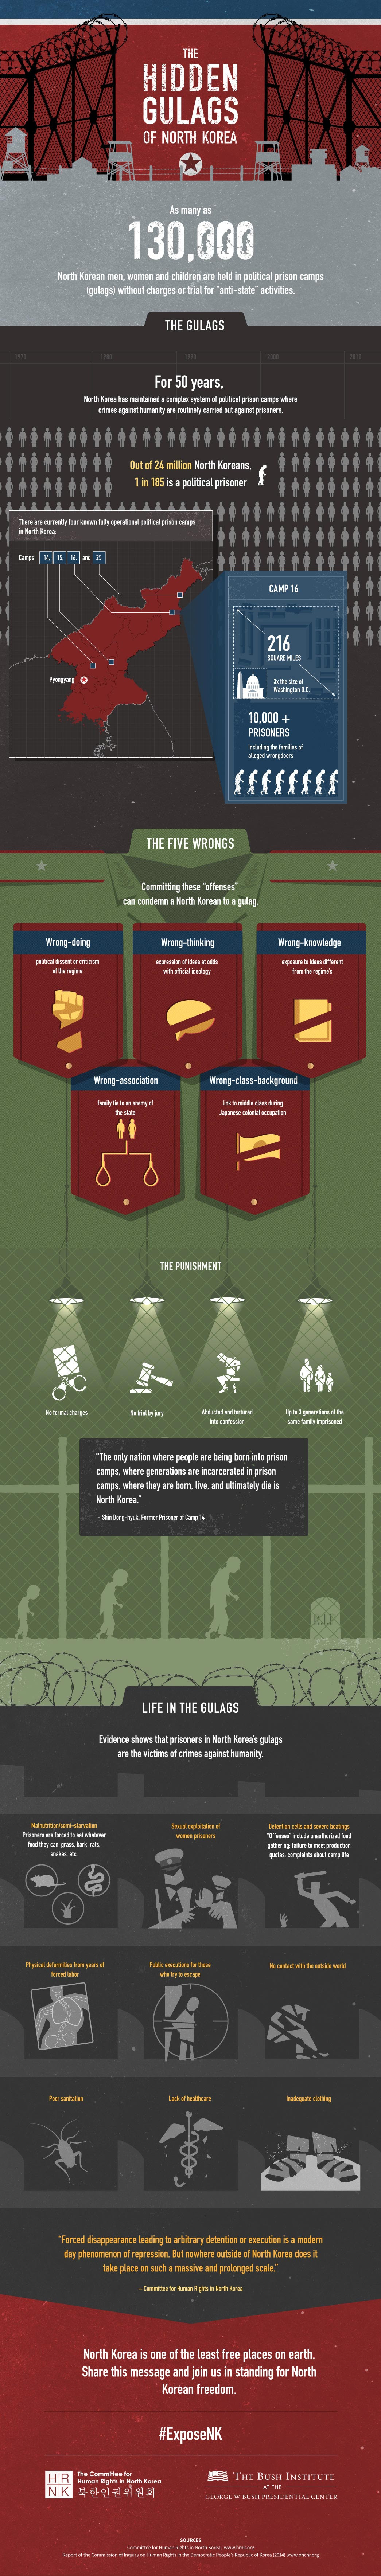 Infographic: The Hidden Gulags of North Korea #infographic